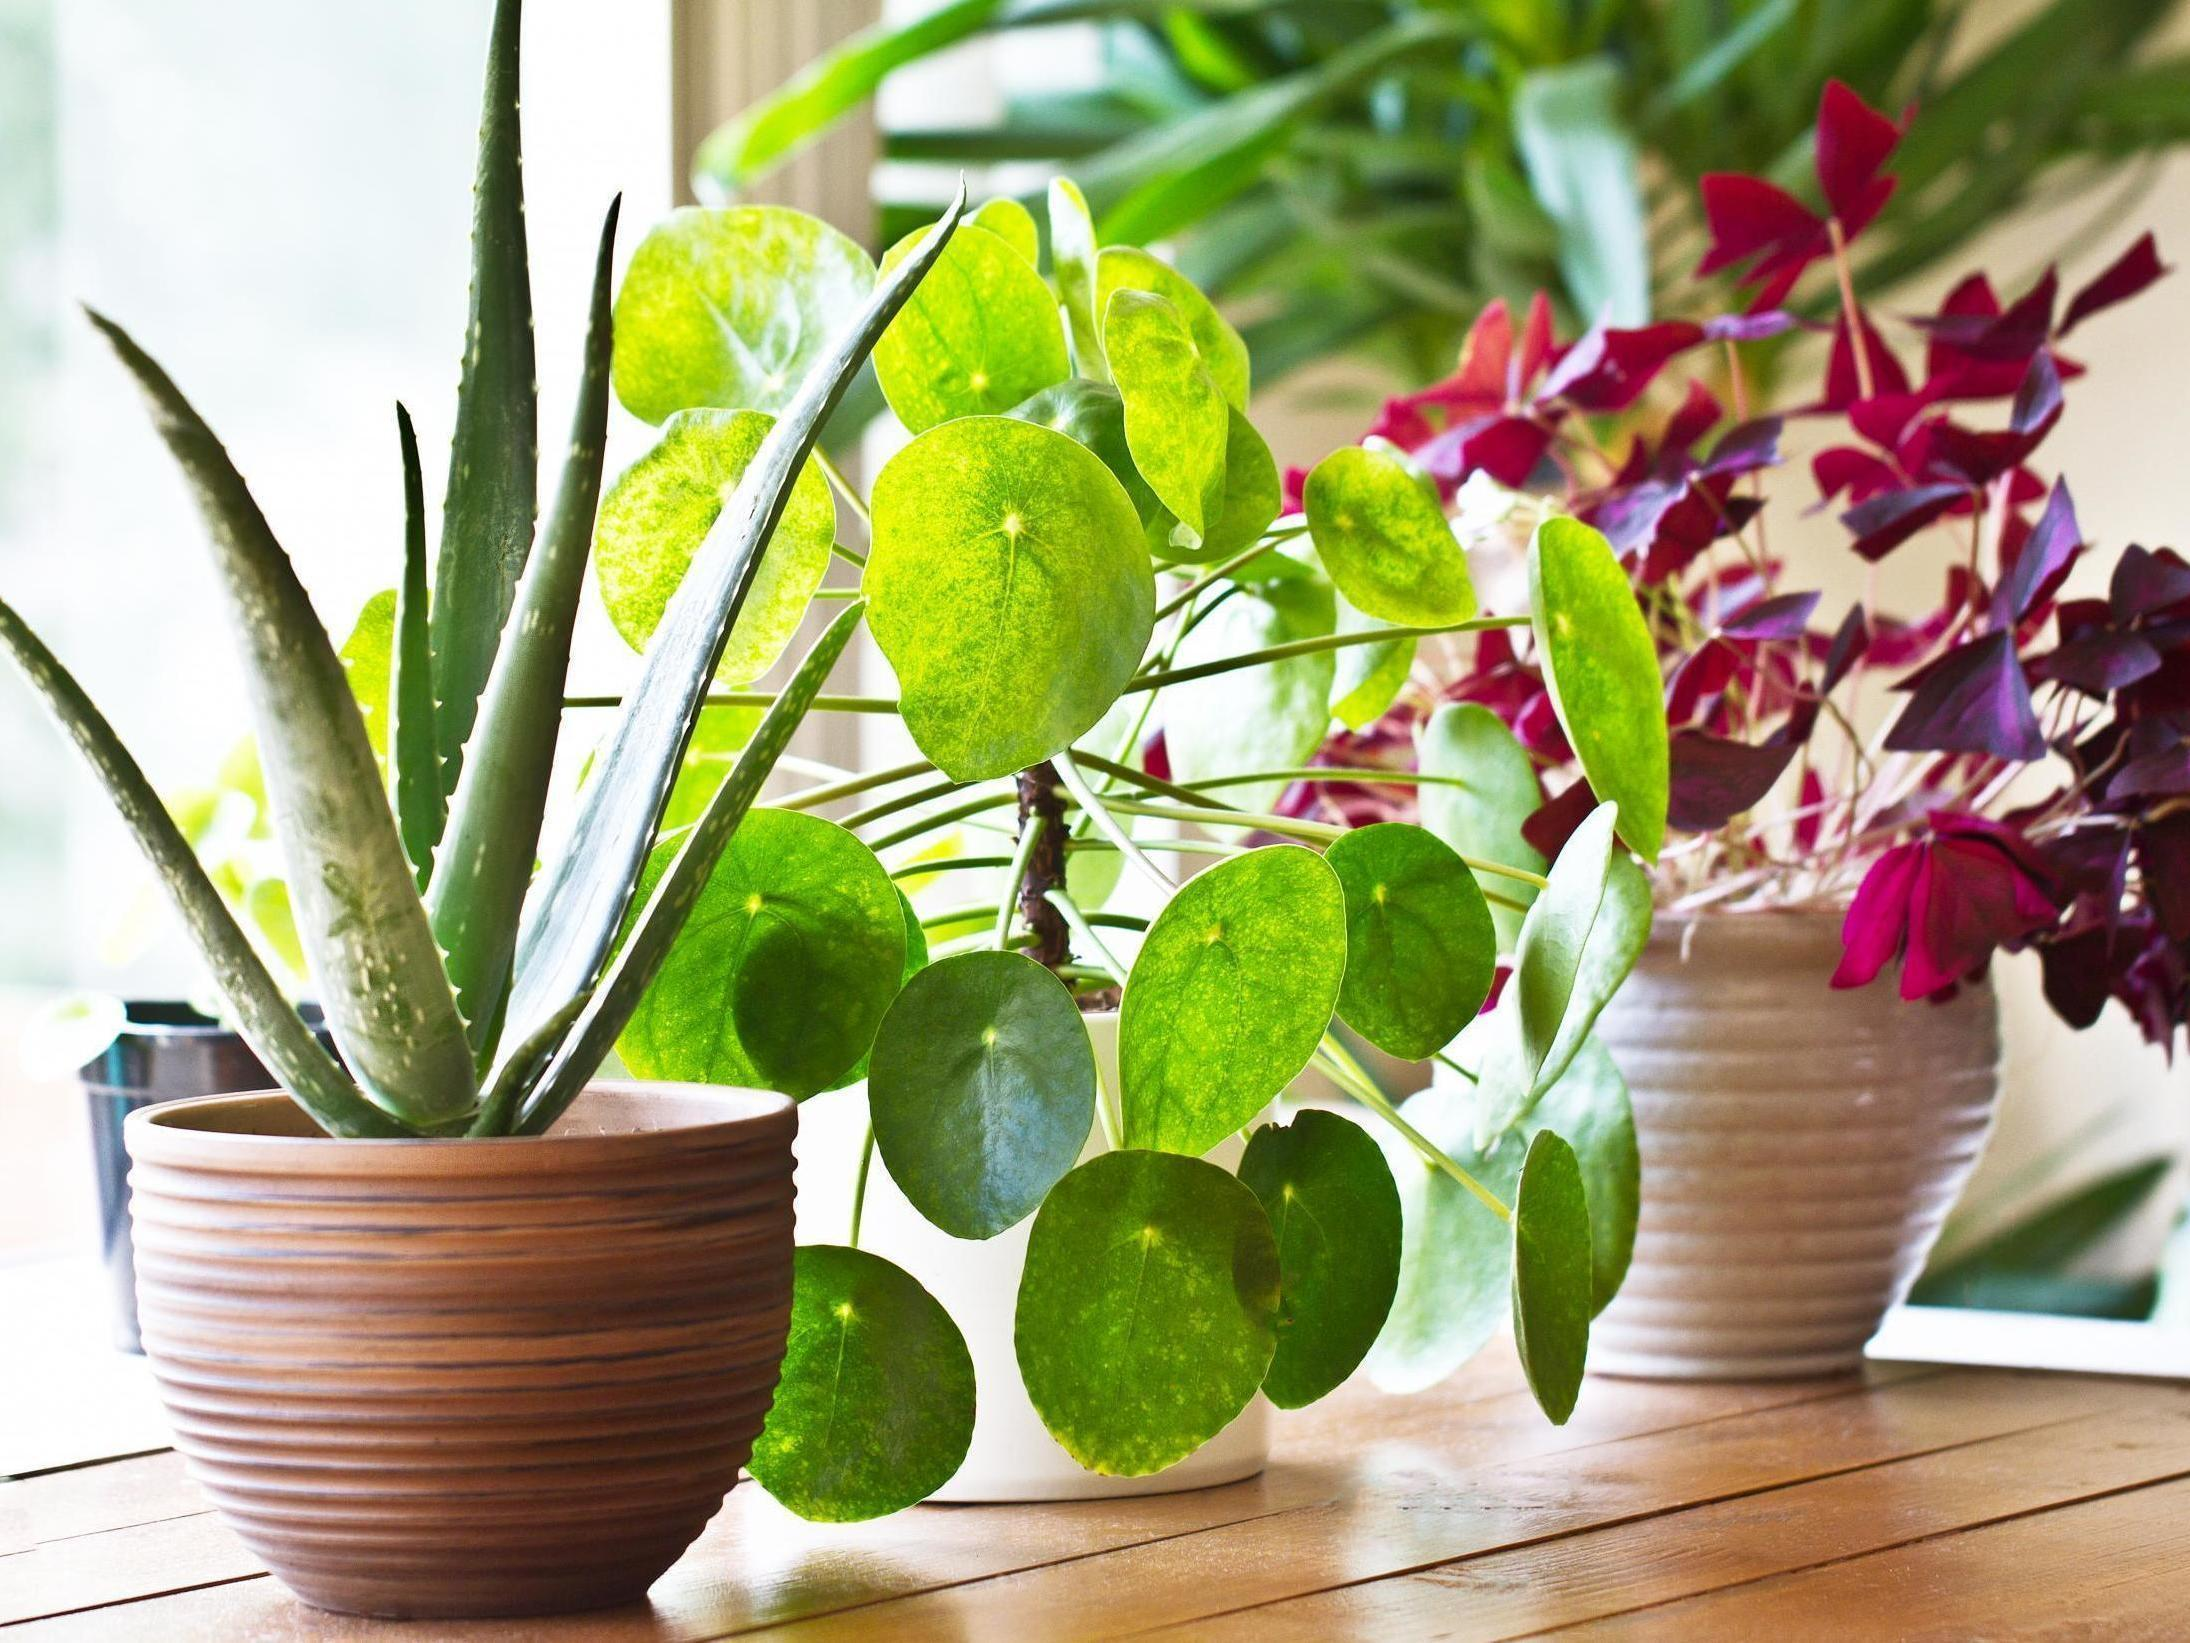 Houseplants Latest News Breaking Stories And Comment The